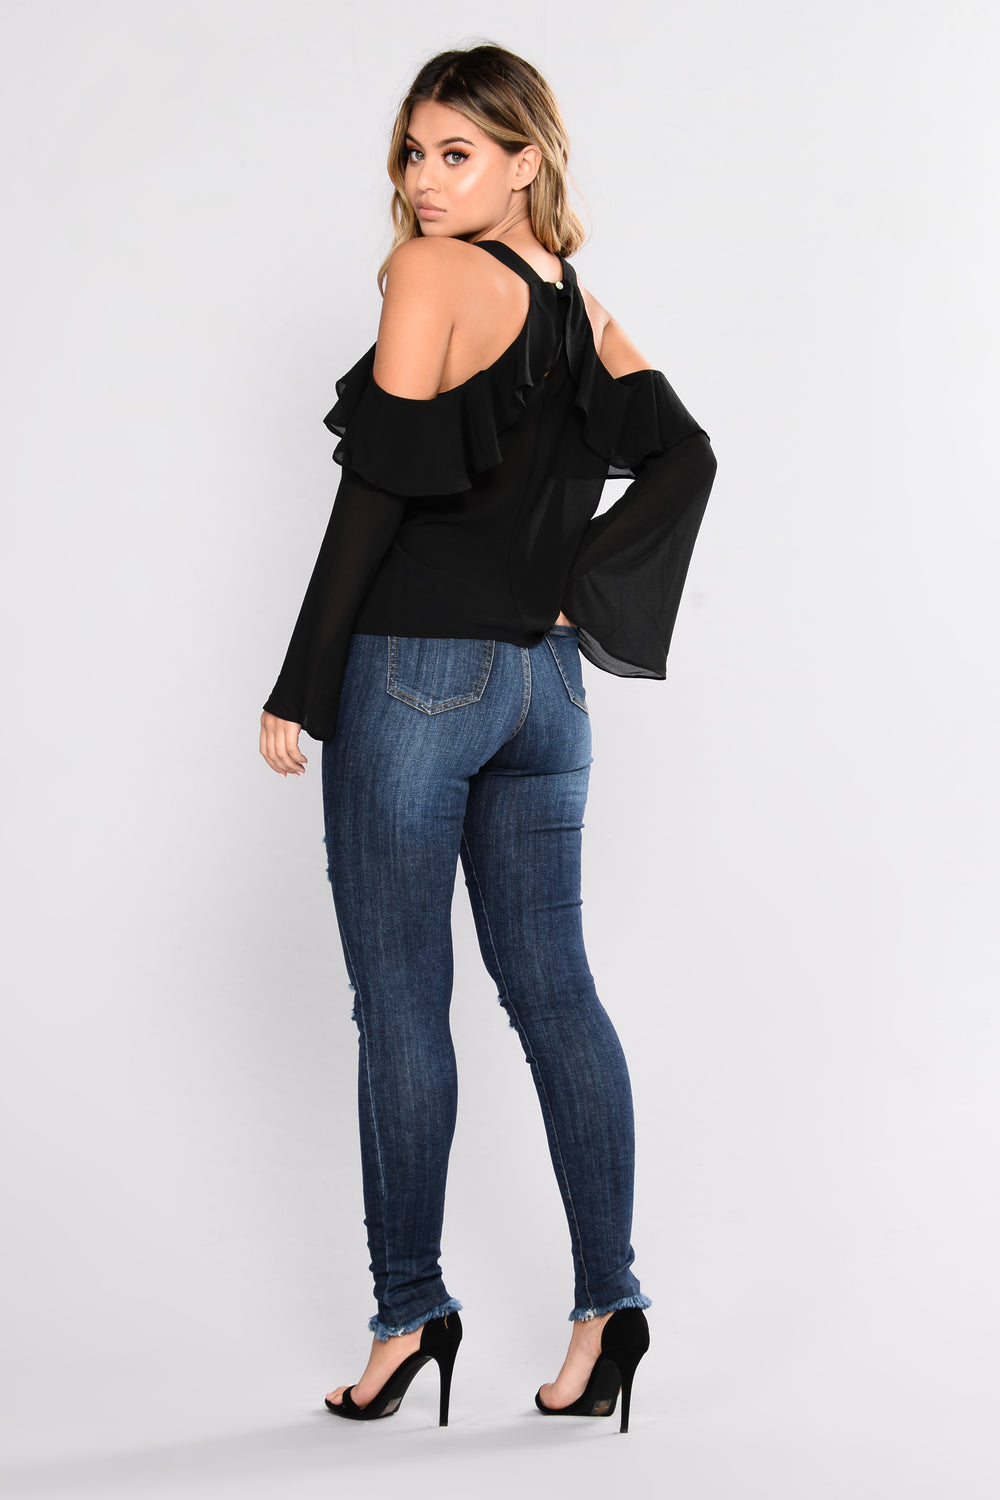 Myah Ruffle Top - Black